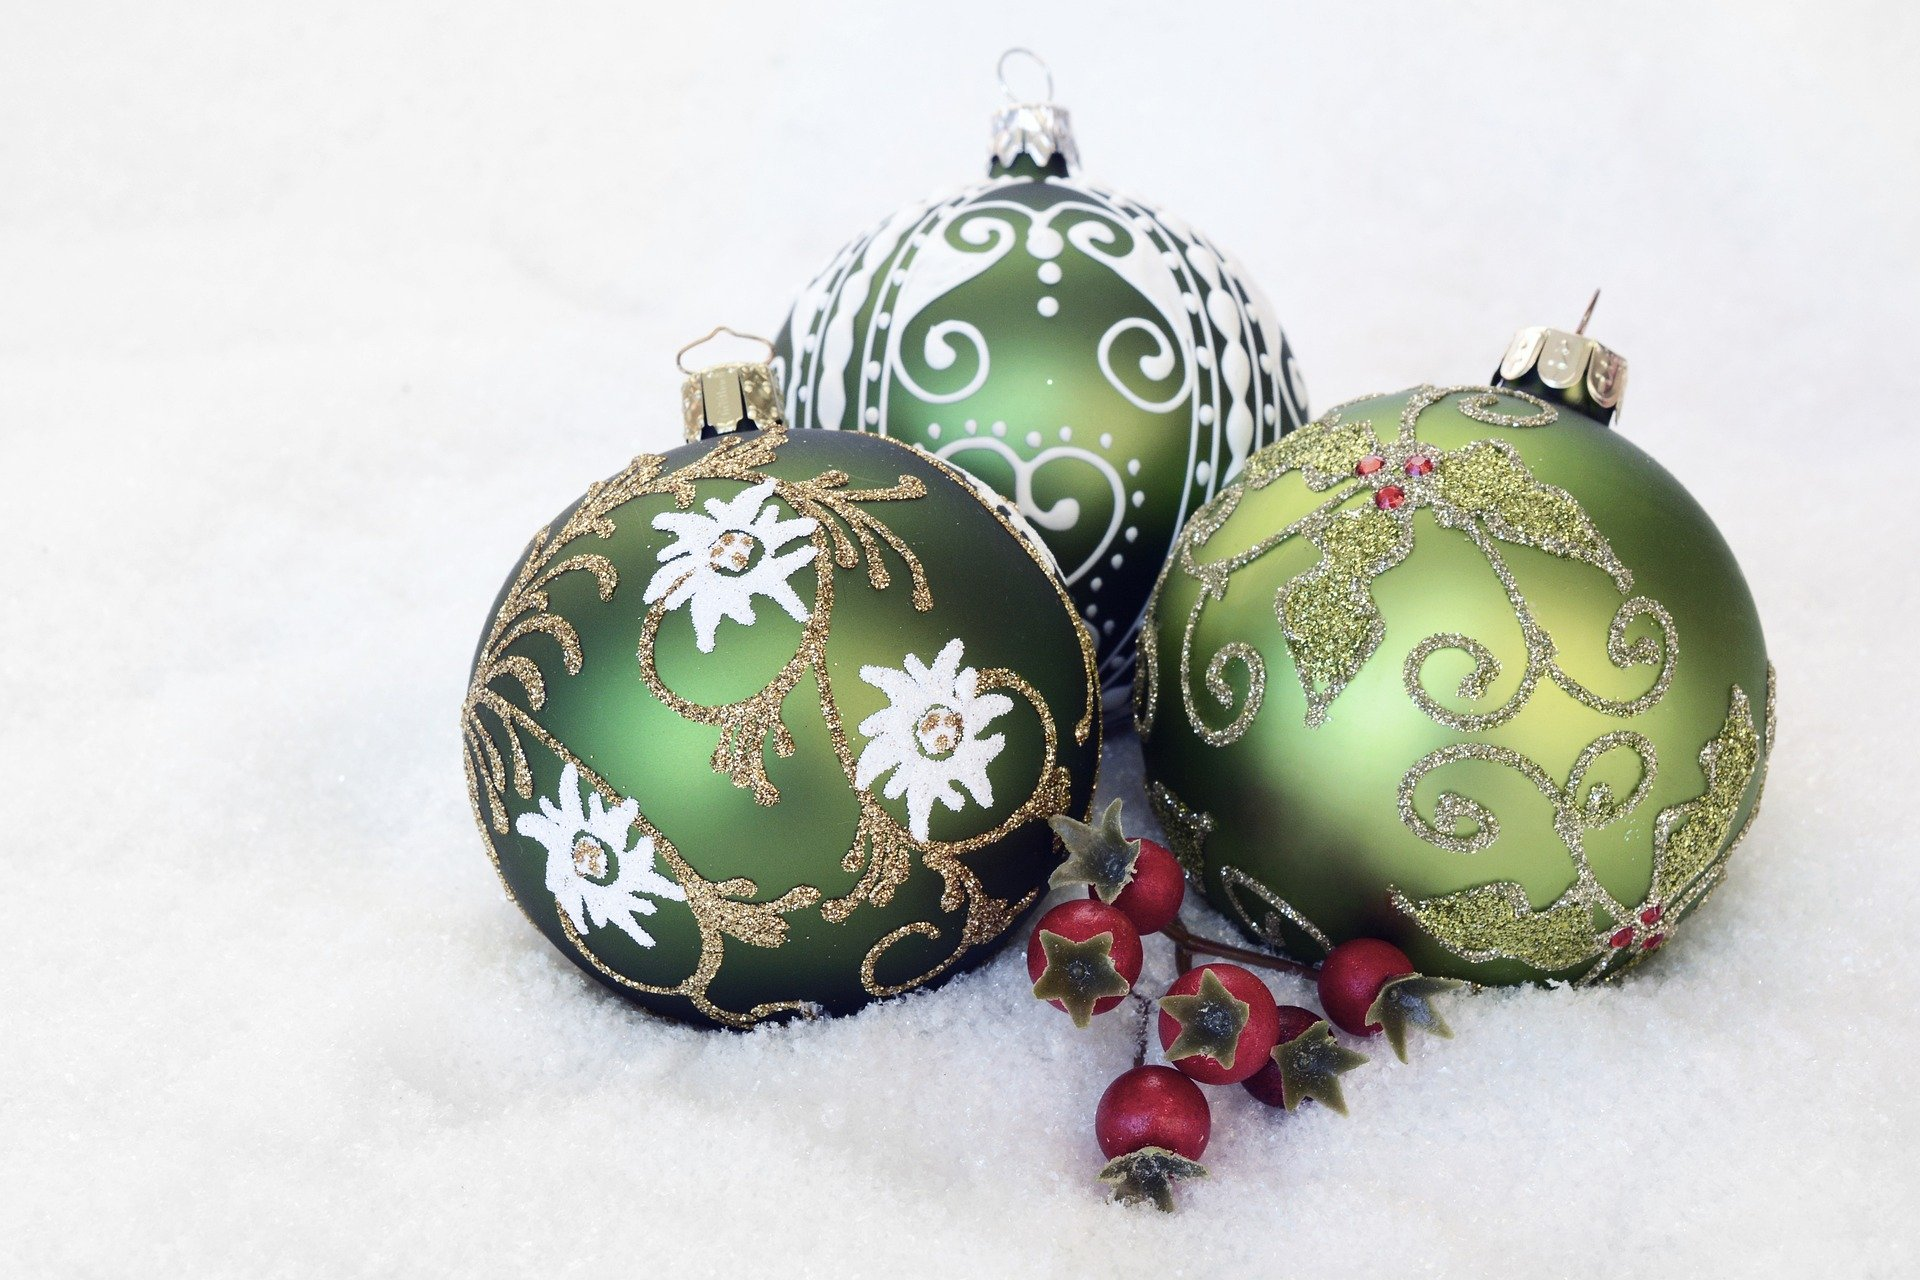 Christmas Baubles. annca. via Pixabay. CC0 Creative Commons. christmas-bauble-2956231_1920